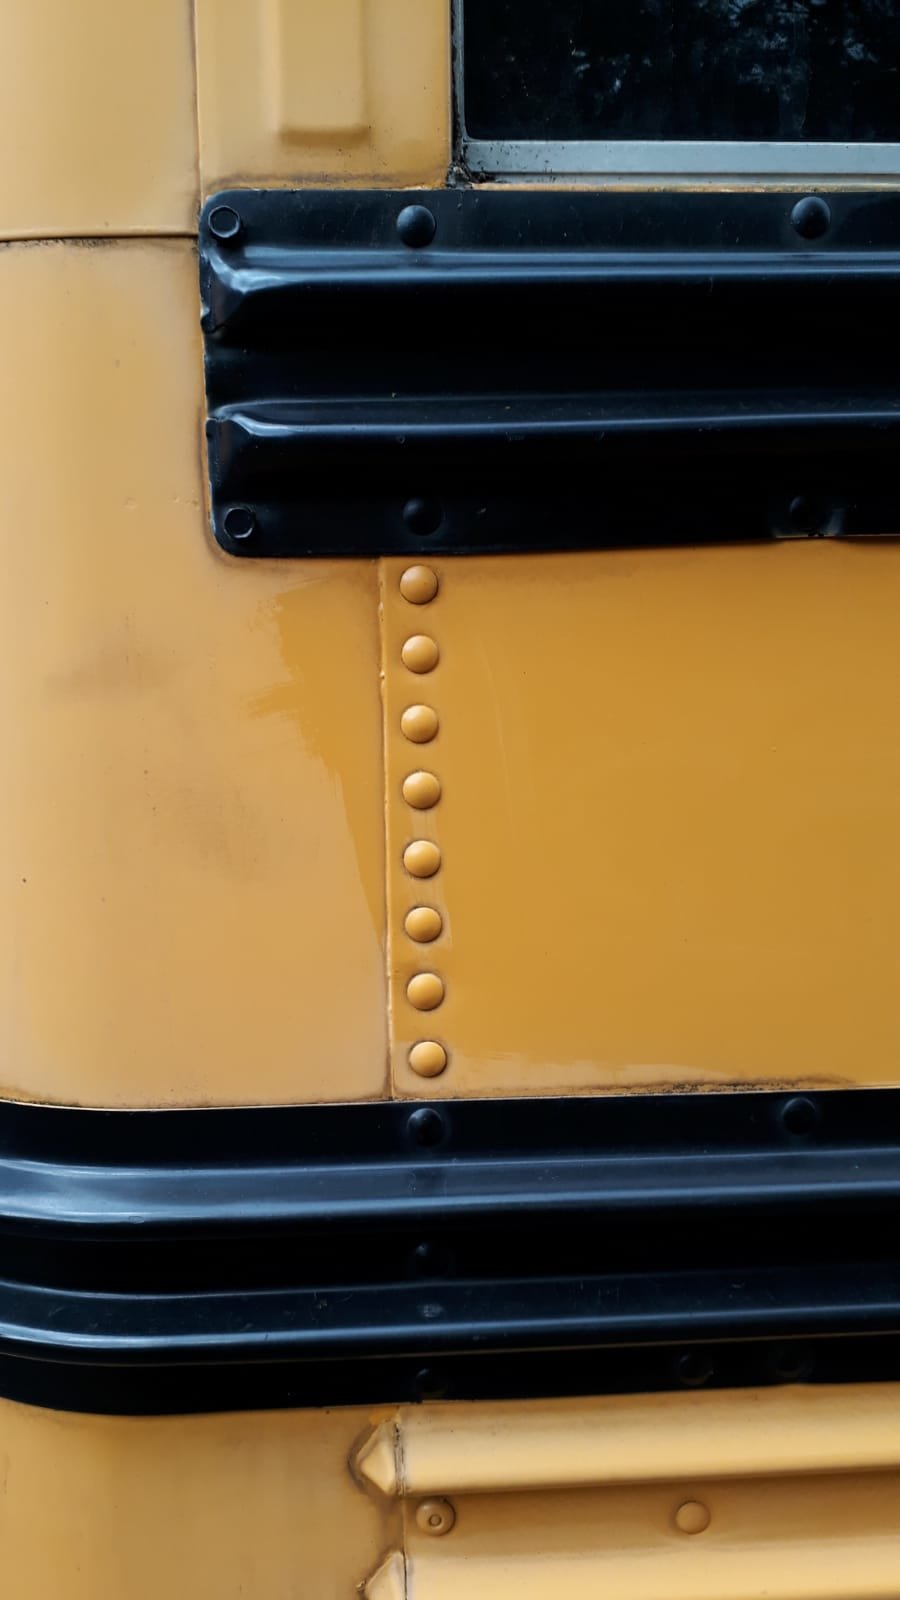 1999 GMC Bluebird American School Bus  For Sale (picture 3 of 6)